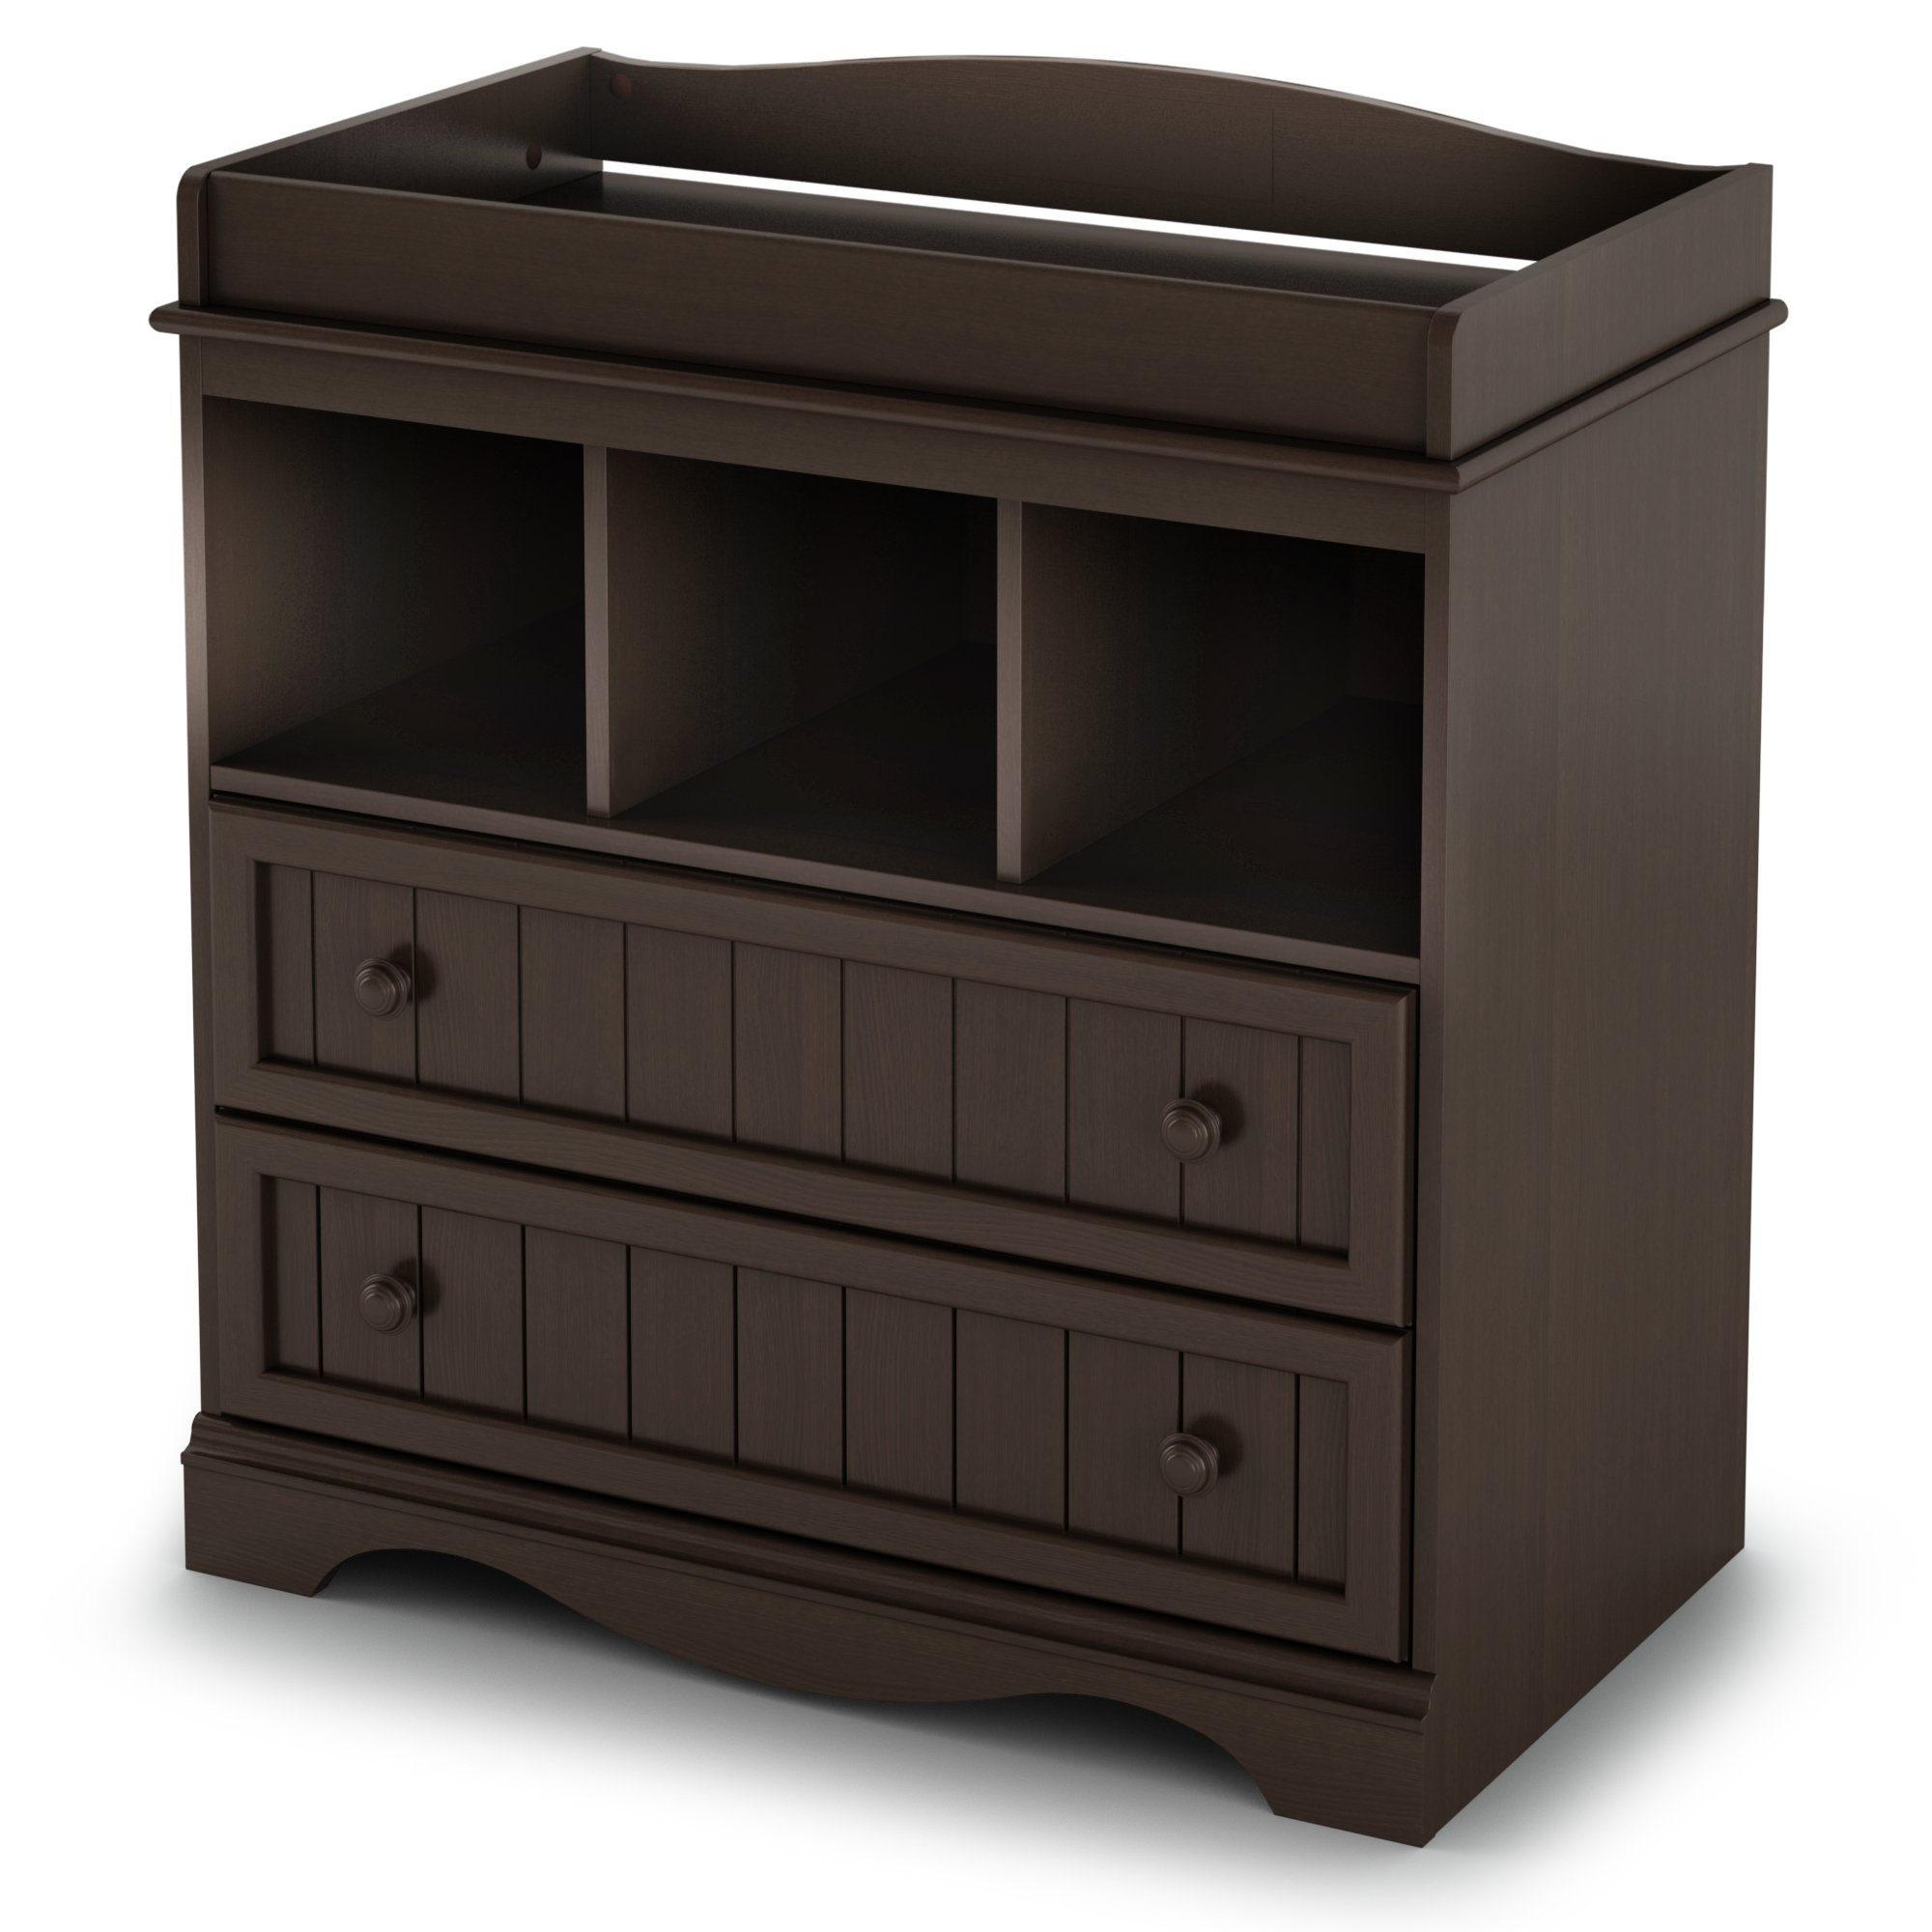 South Shore 2-Drawer Changing Table with Open Storage, Espresso by South Shore